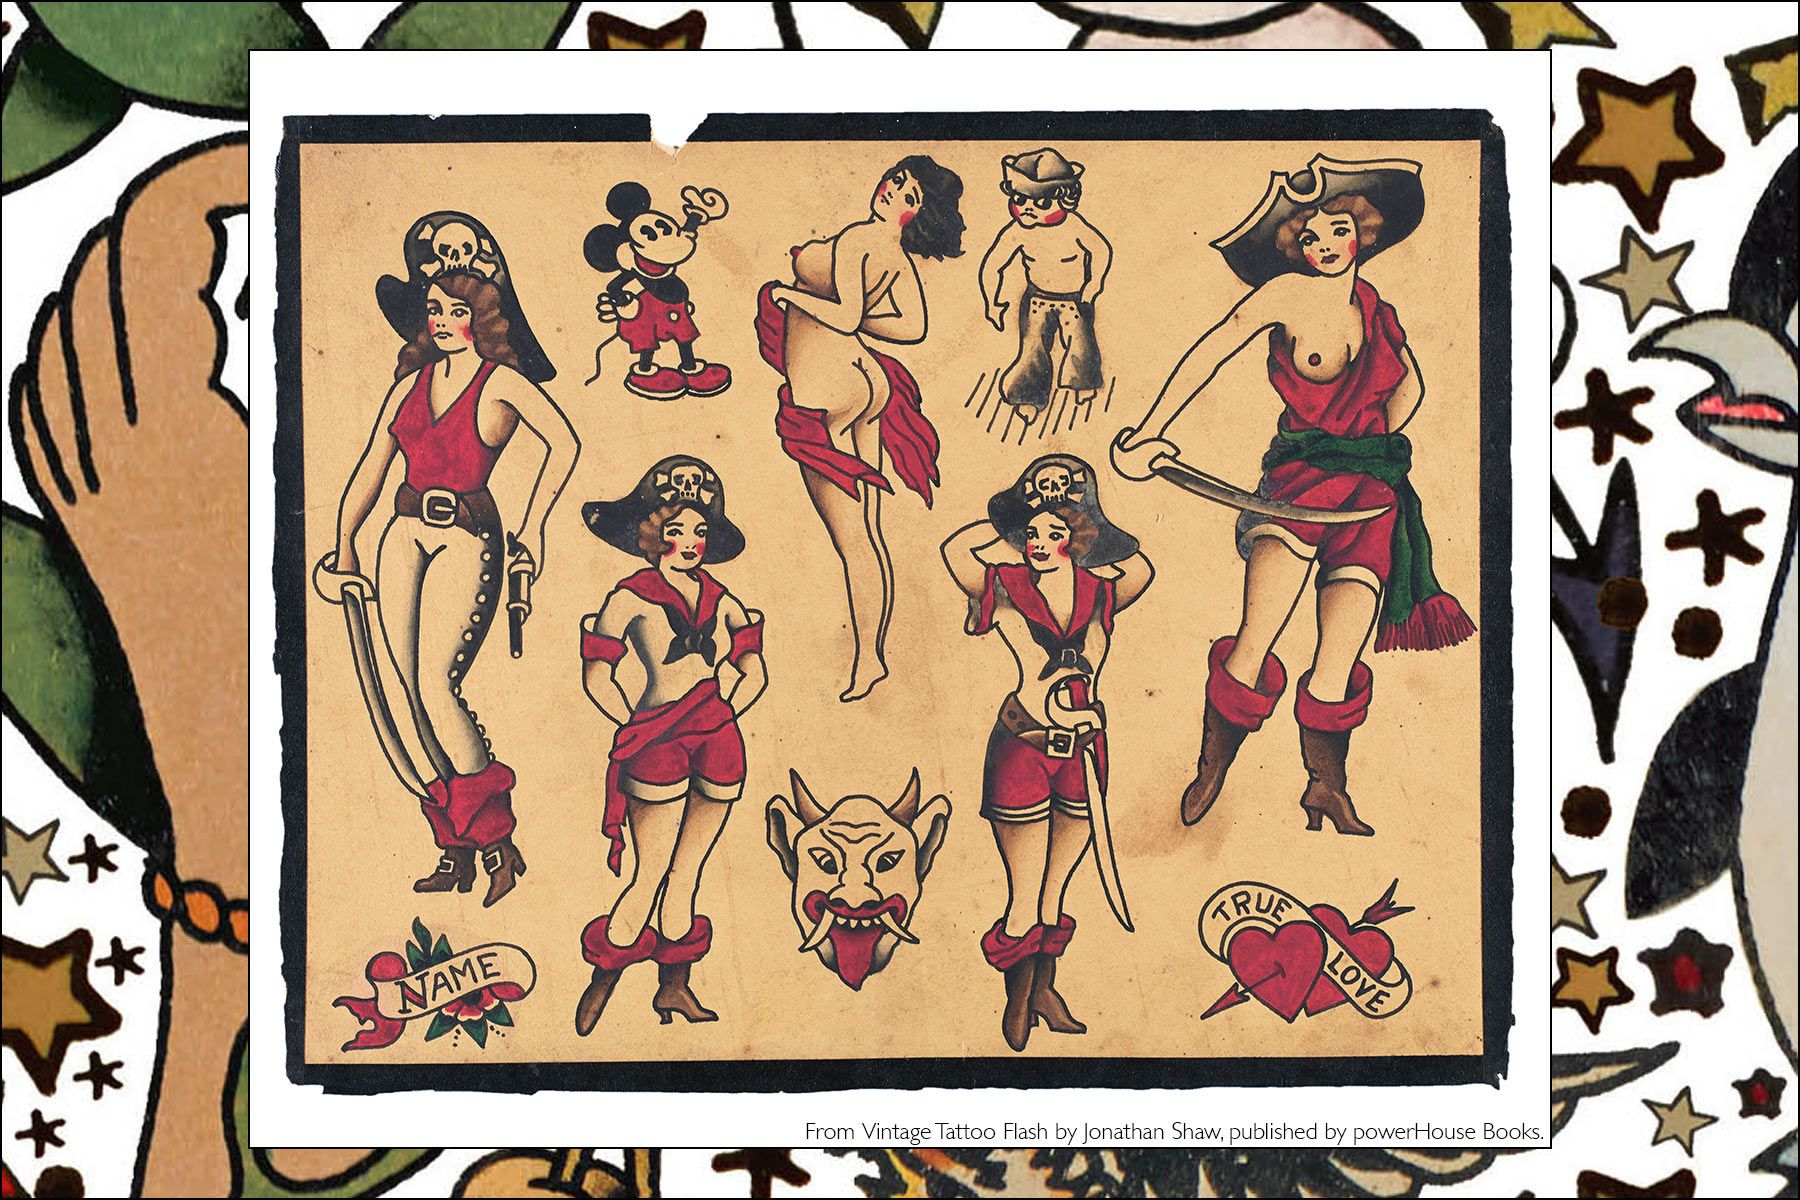 Tattoo flash from the newly released publication, Vintage Tattoo Flash by Jonathan Shaw, from Powerhouse Books. Ponyboy magazine NY.